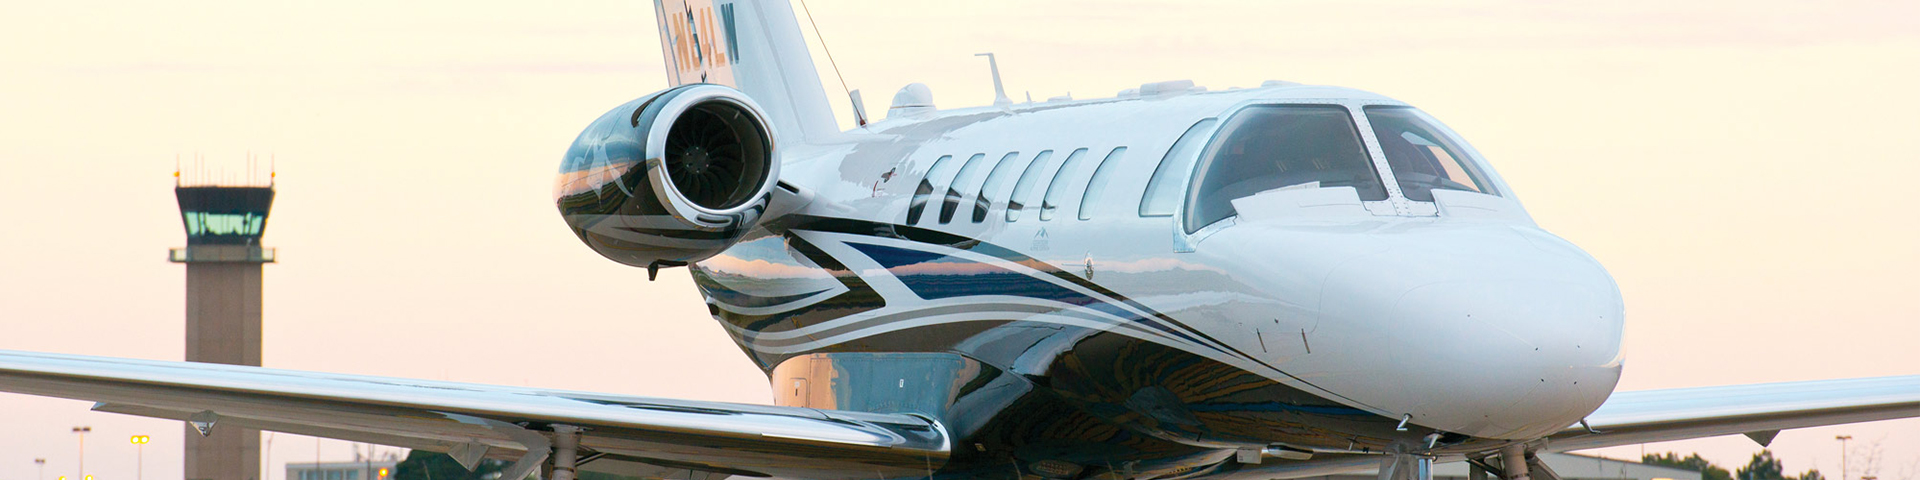 Citation CJ21 - Citation CJ2 Private Jet